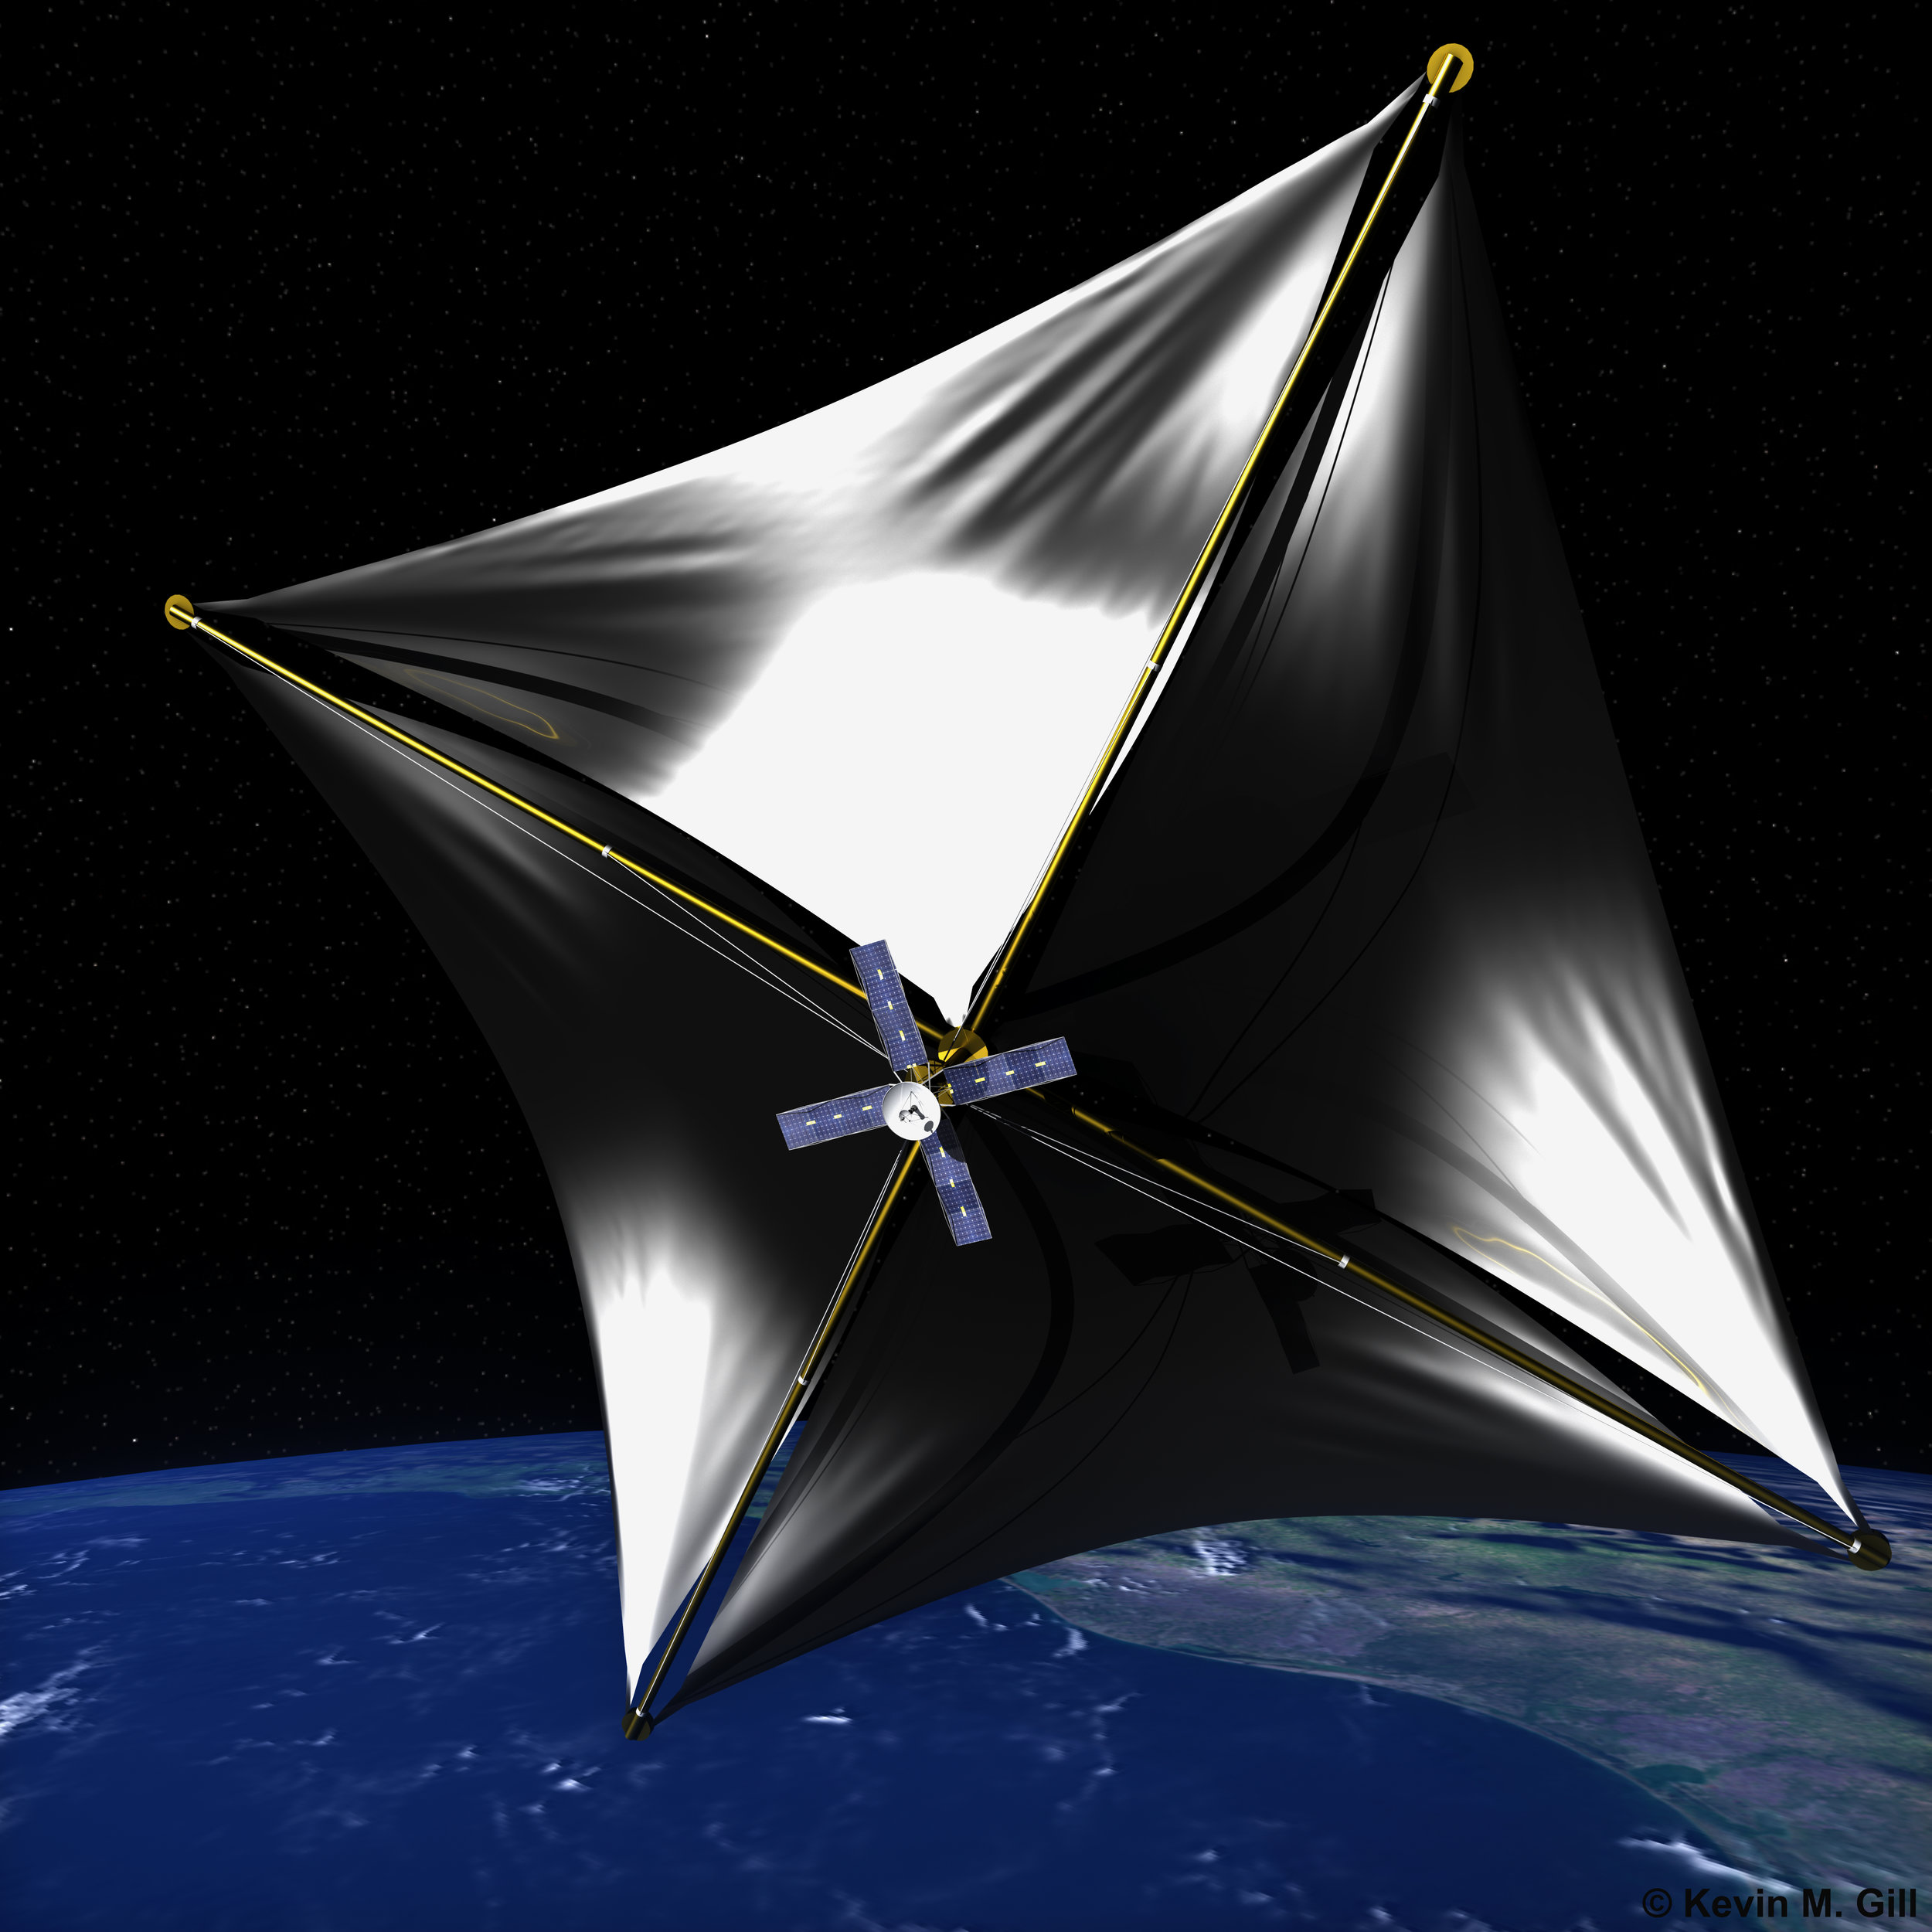 Artist's impression of a solar sail beginning its journey, accelerated (slowly) by the solar winds. Image credit: Kevin Gill, CC A-SA 2.0